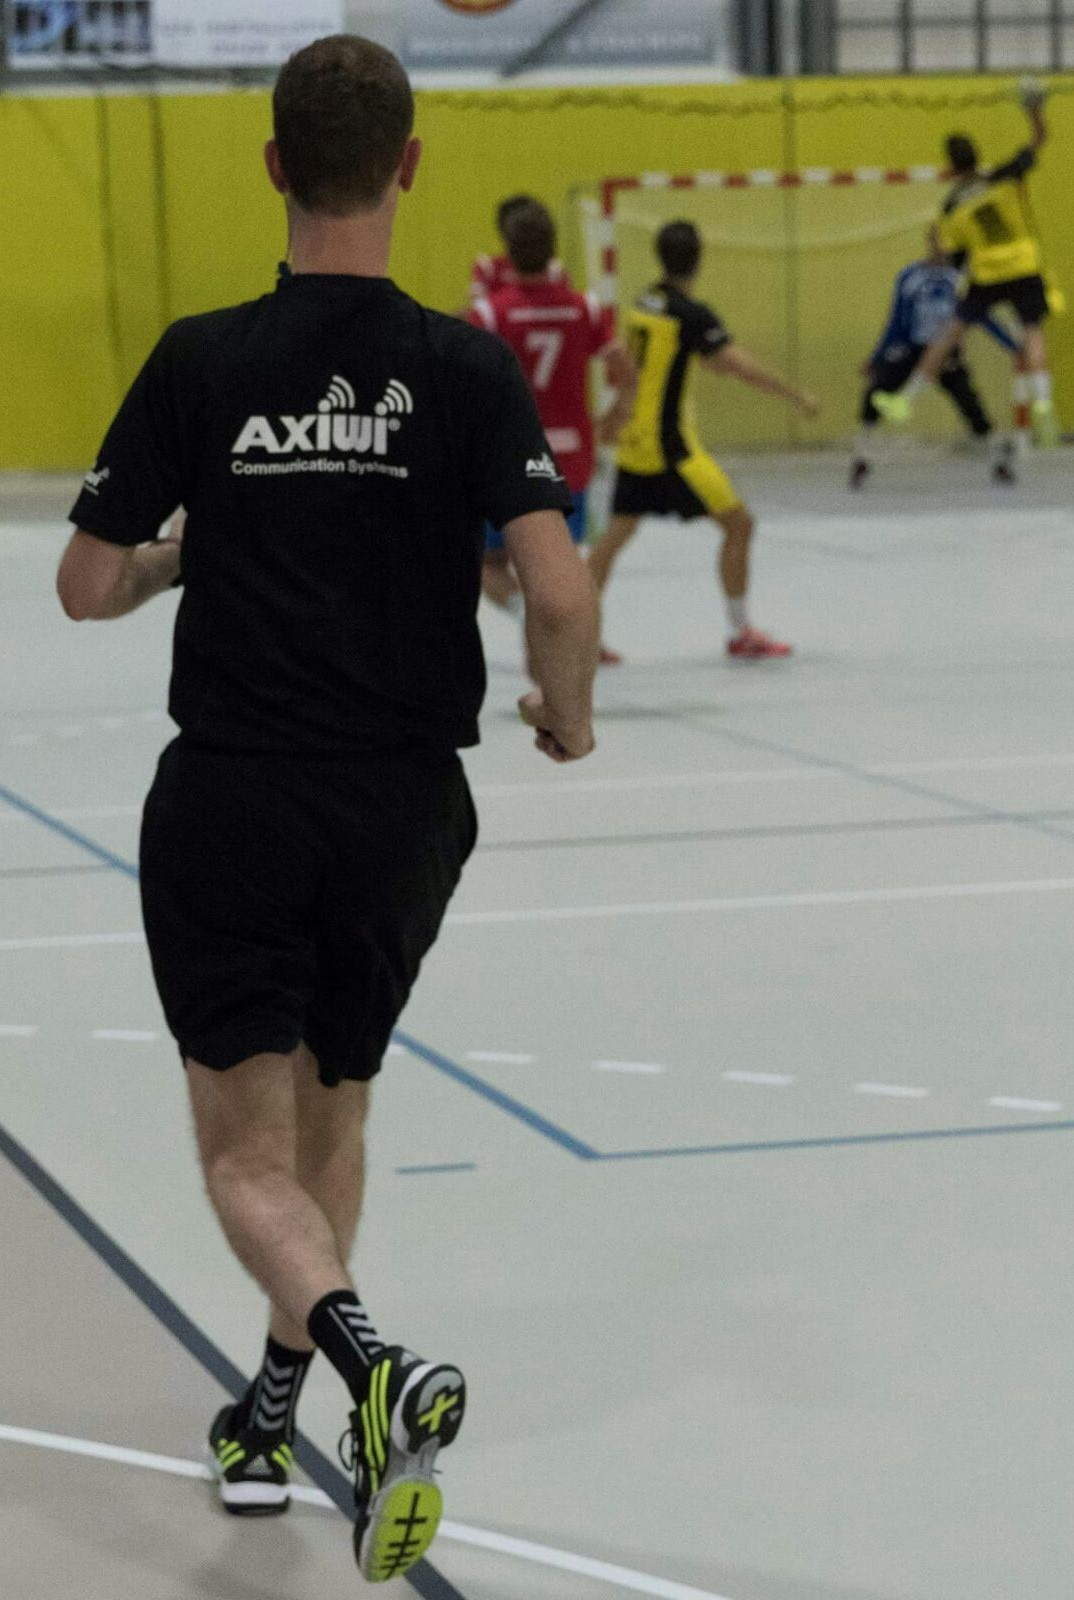 /wireless-communication-system-referee-handball-axiwi